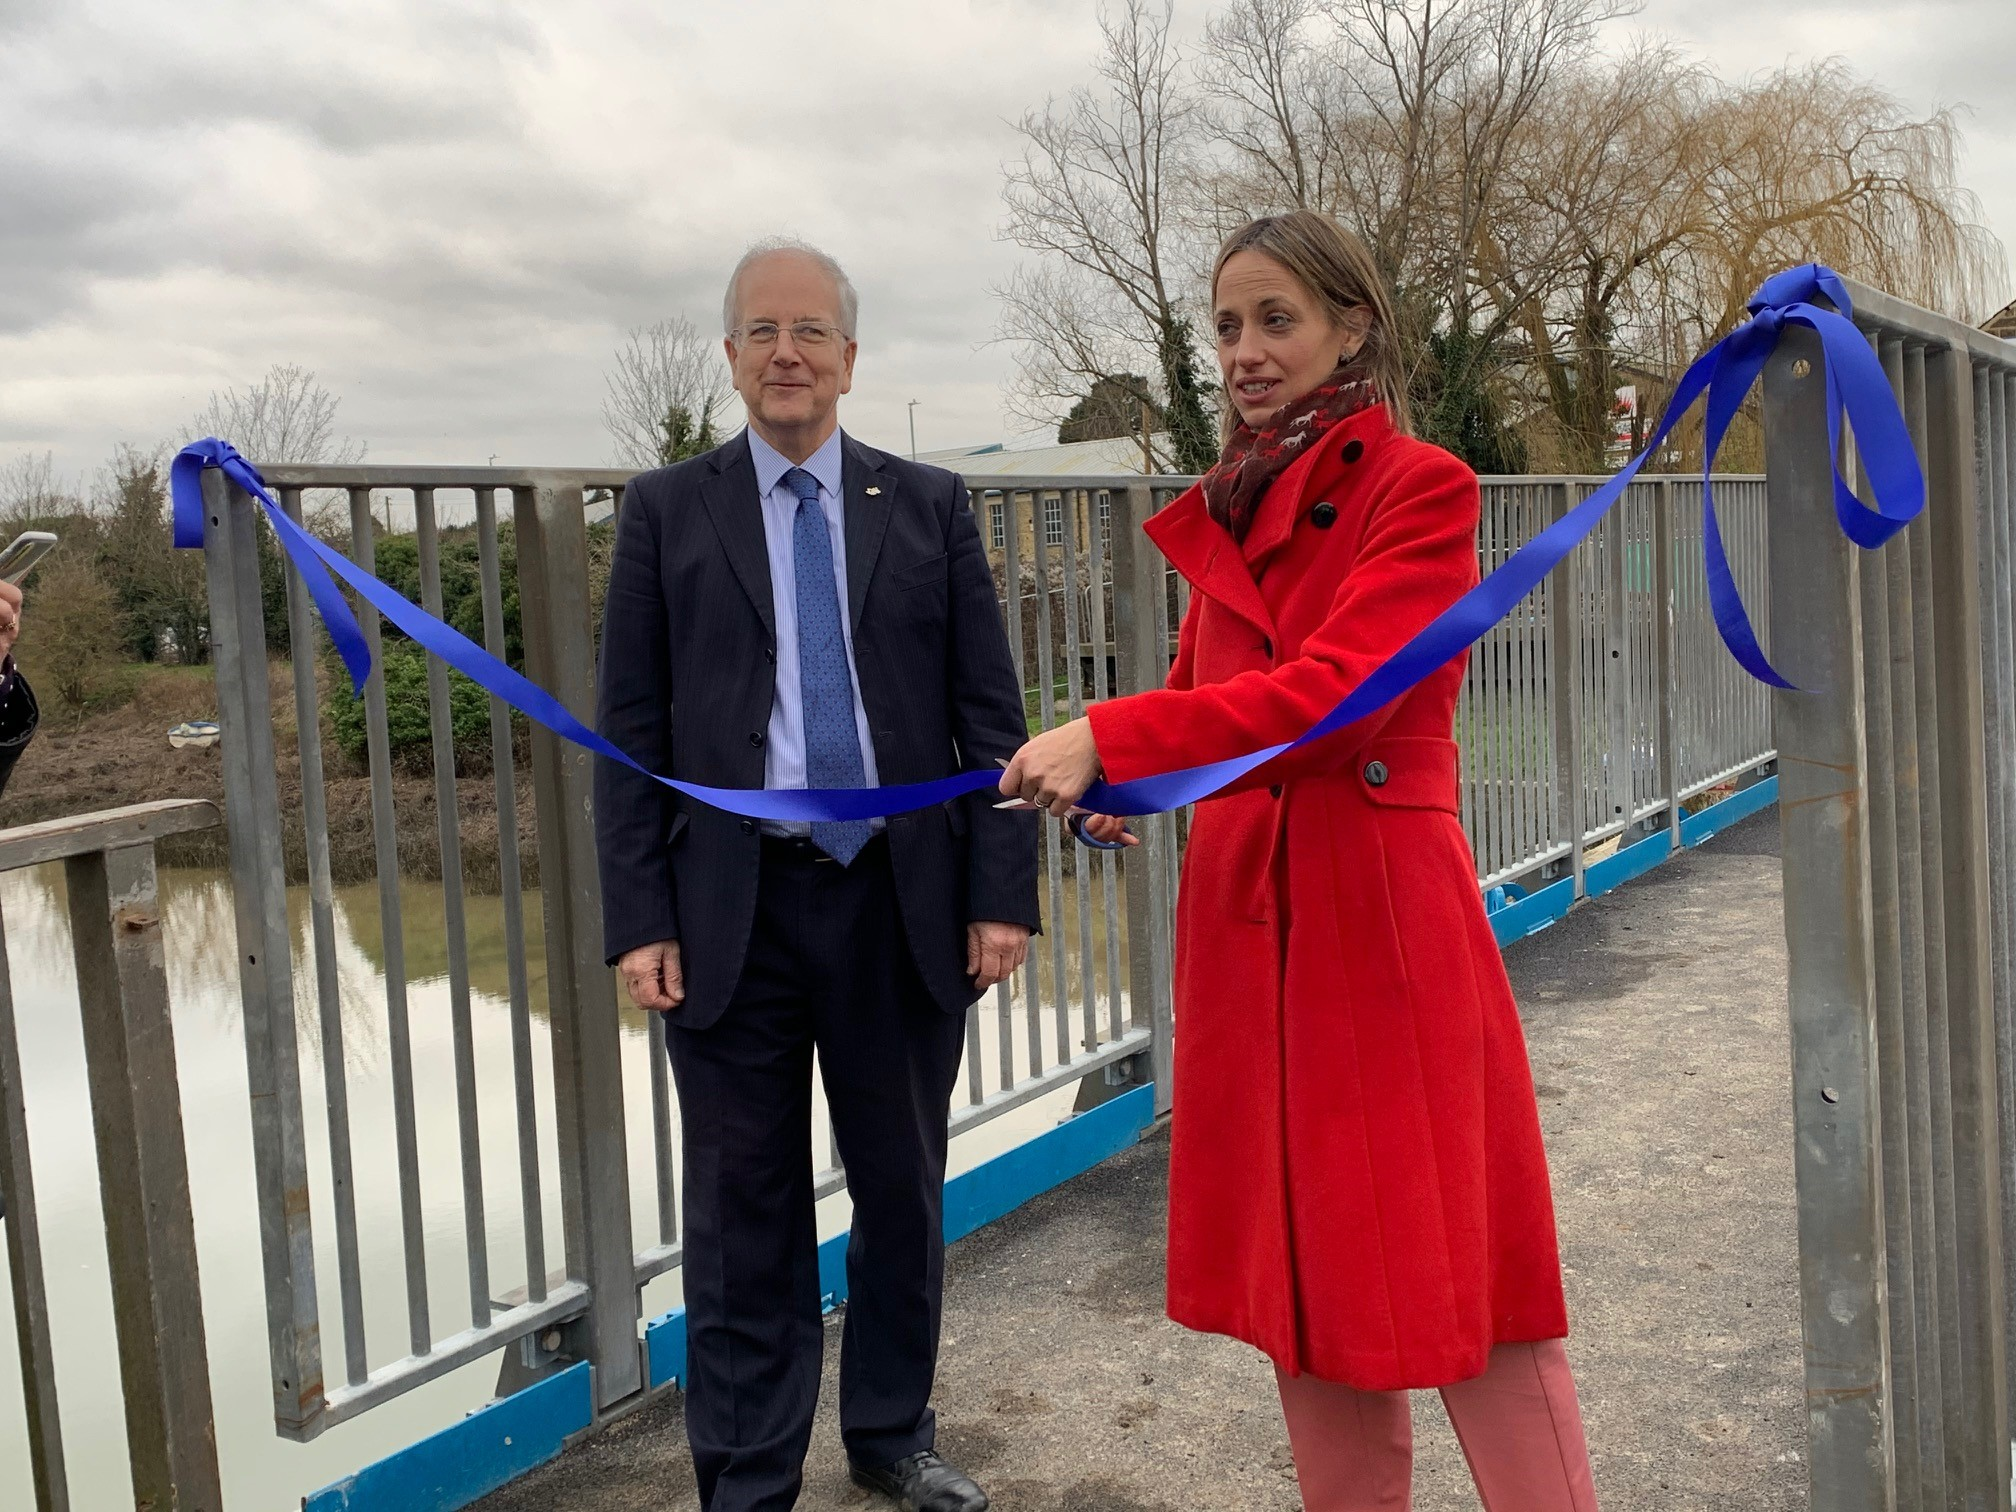 Faversham Creek Bridge Reopened